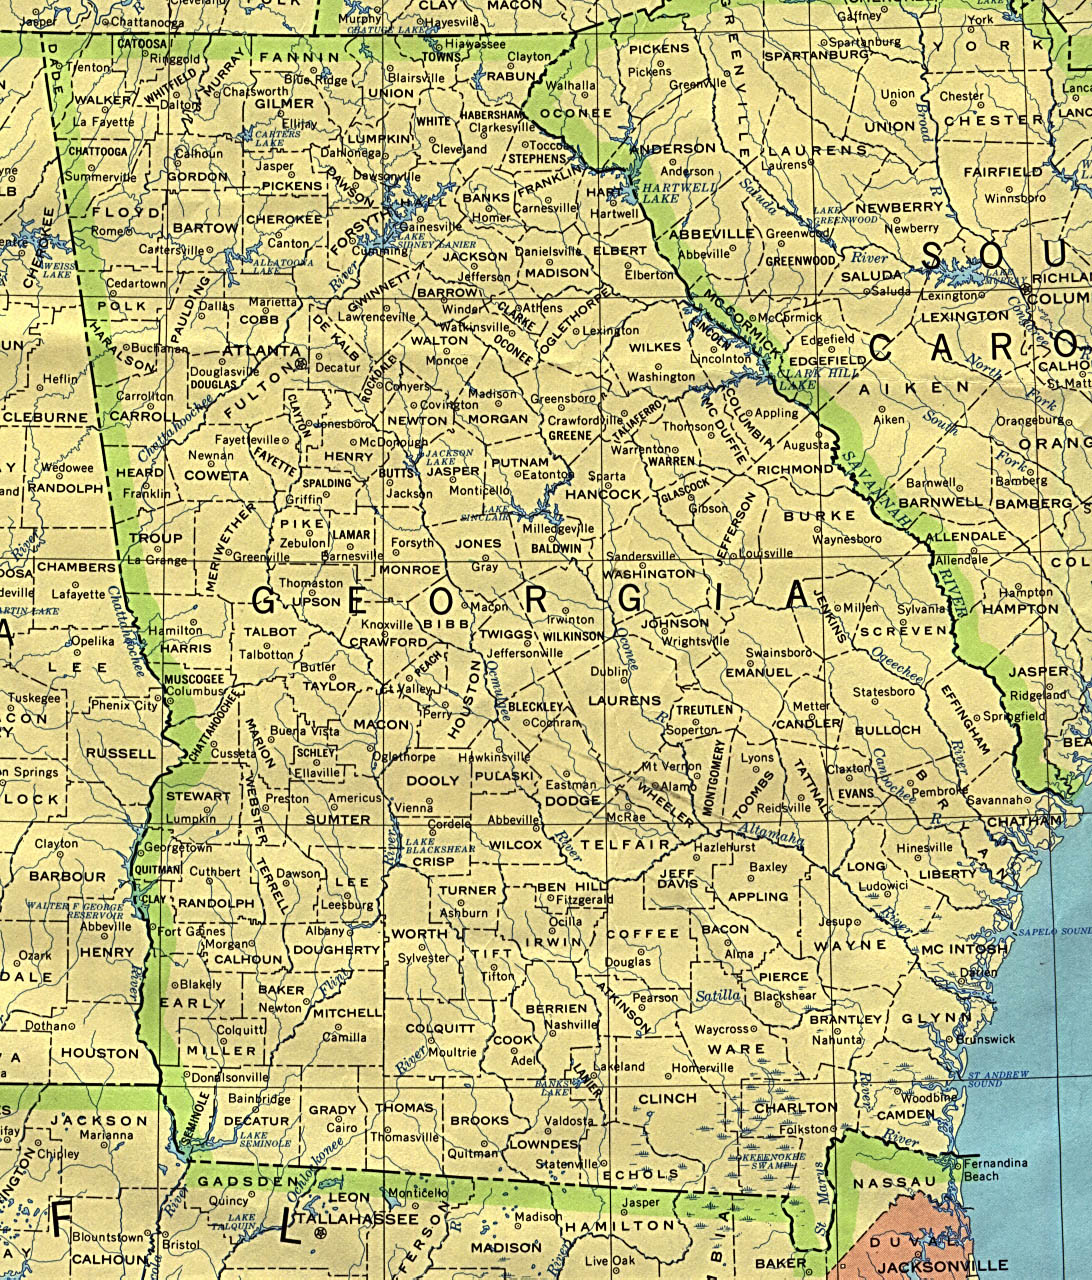 Georgia Outline Maps And Map Links - Georgia physical map